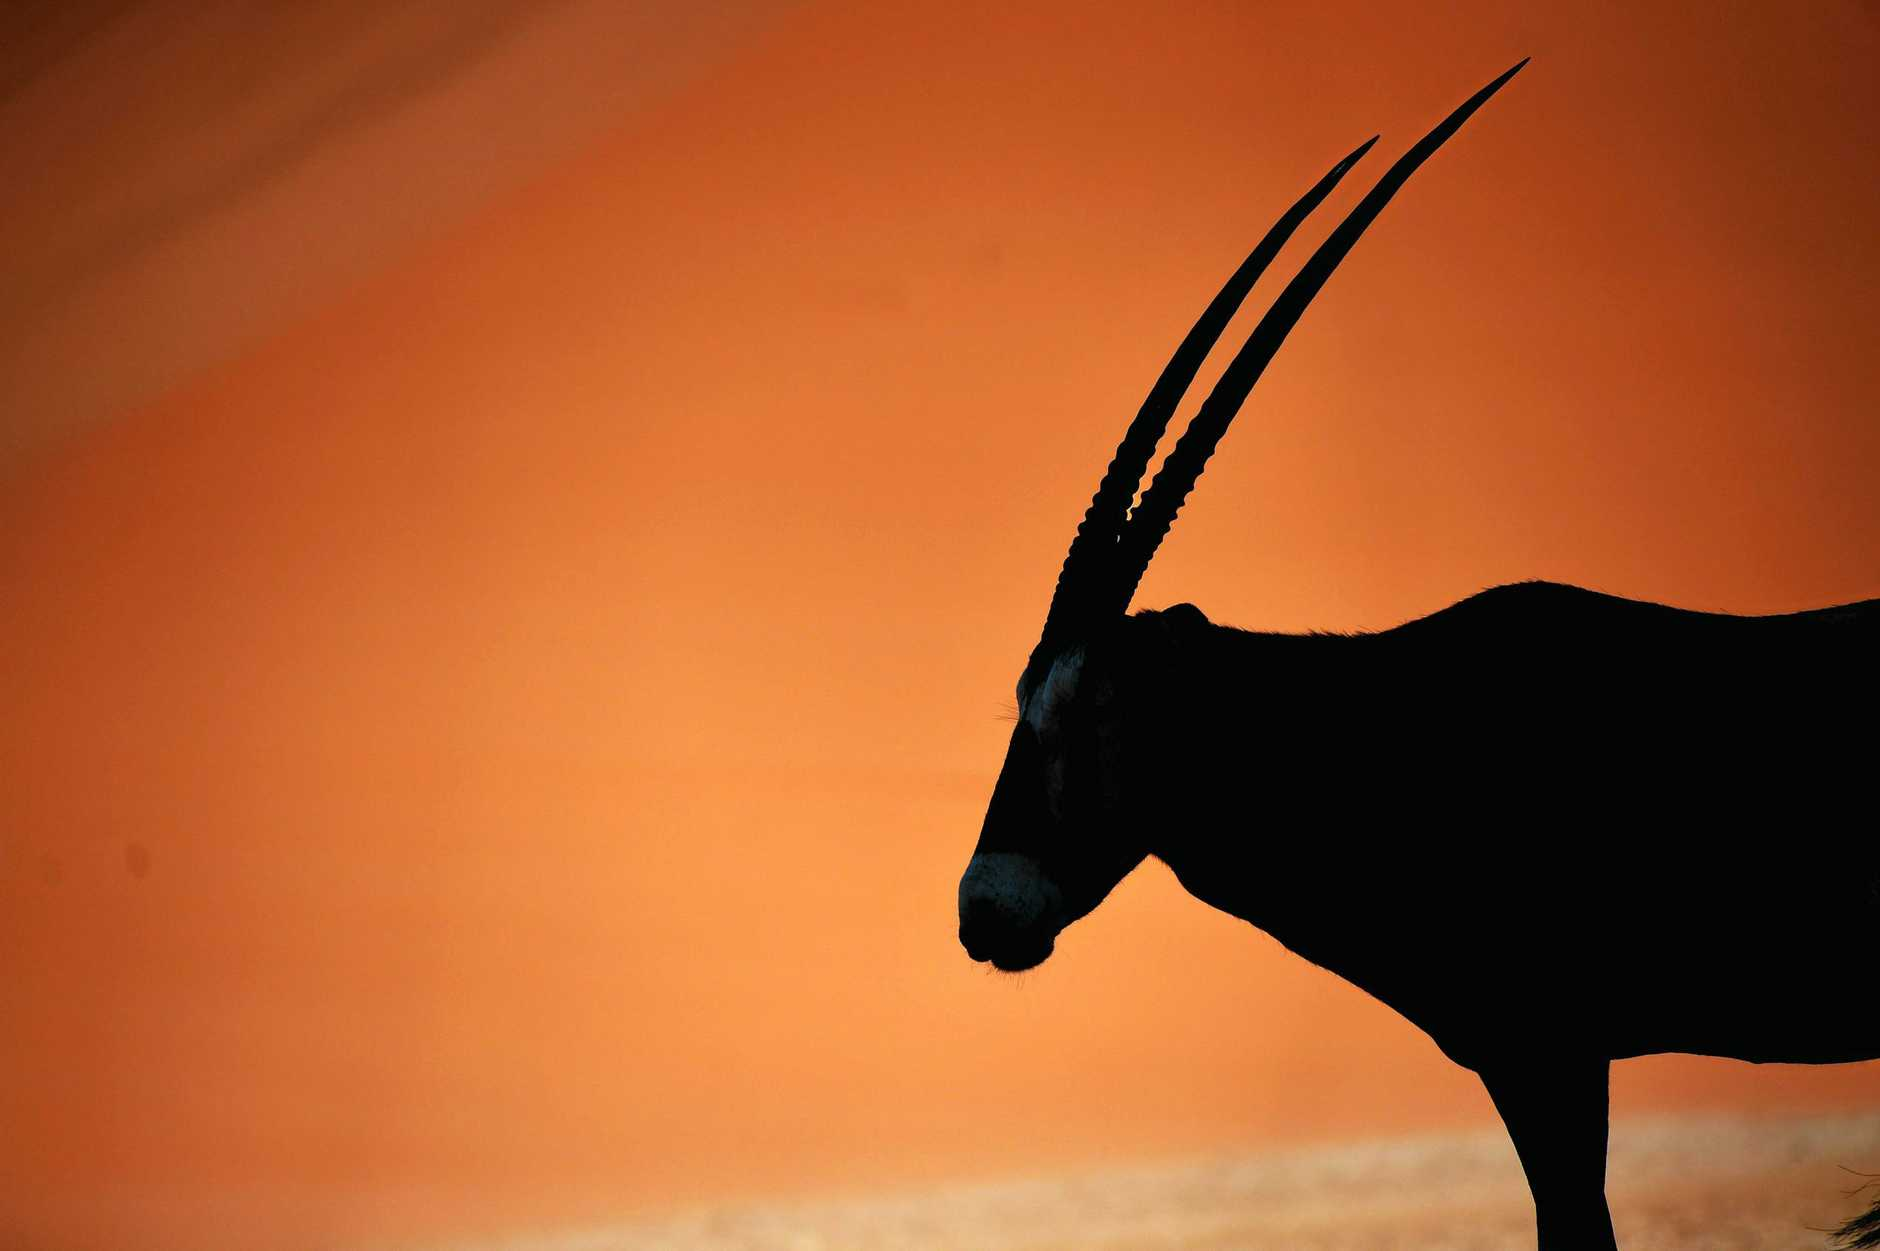 The incredible horns of the Gemsbok against the red sand of the dunes.